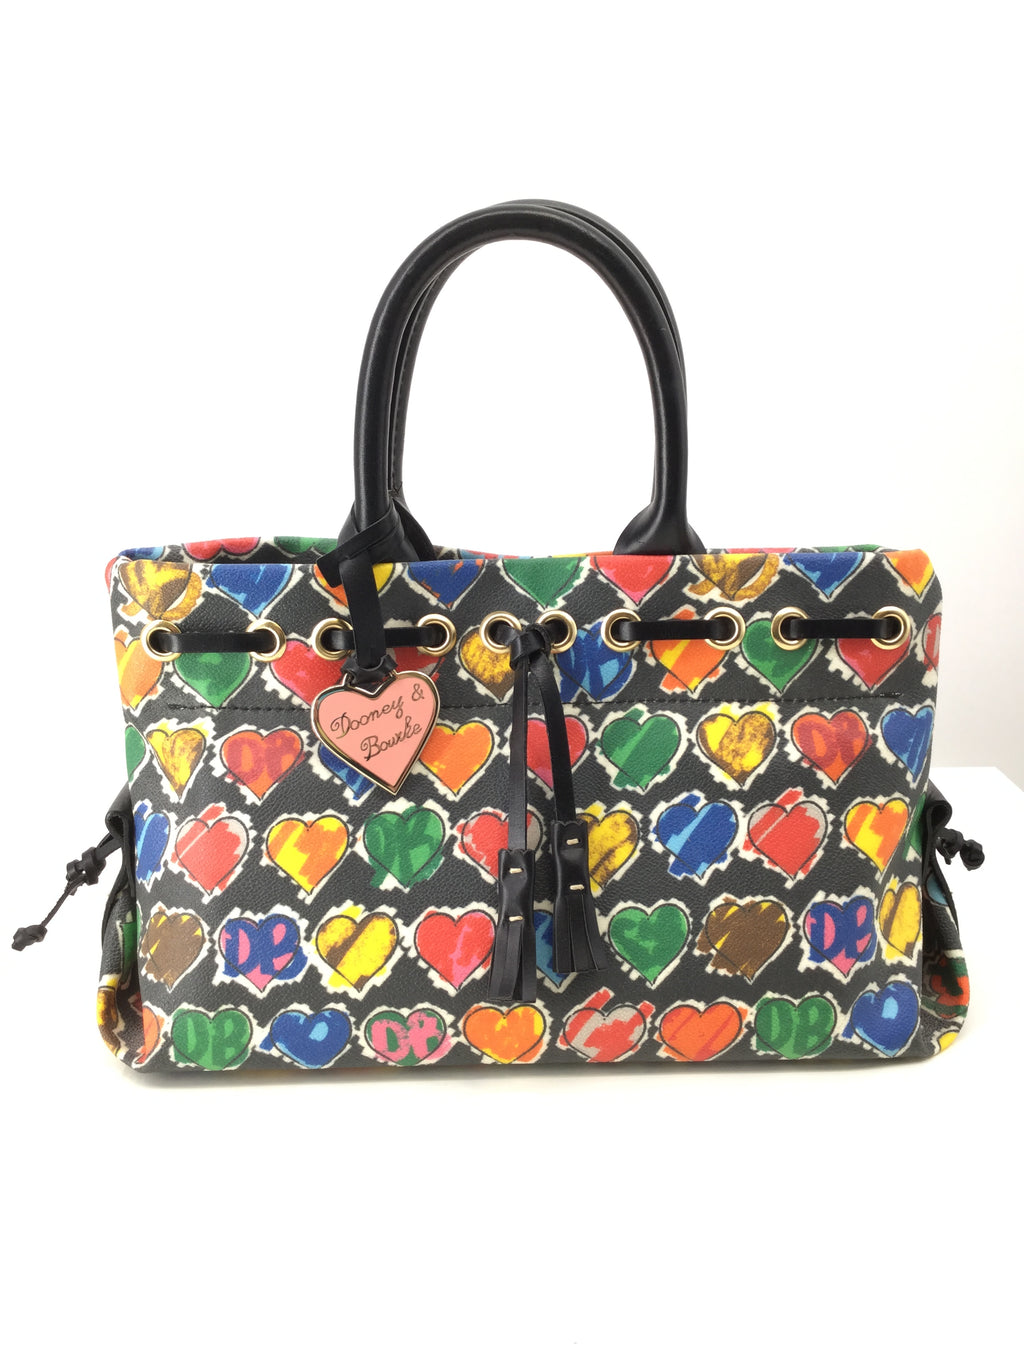 Dooney And Bourke Designer Handbag, Hearts, Small